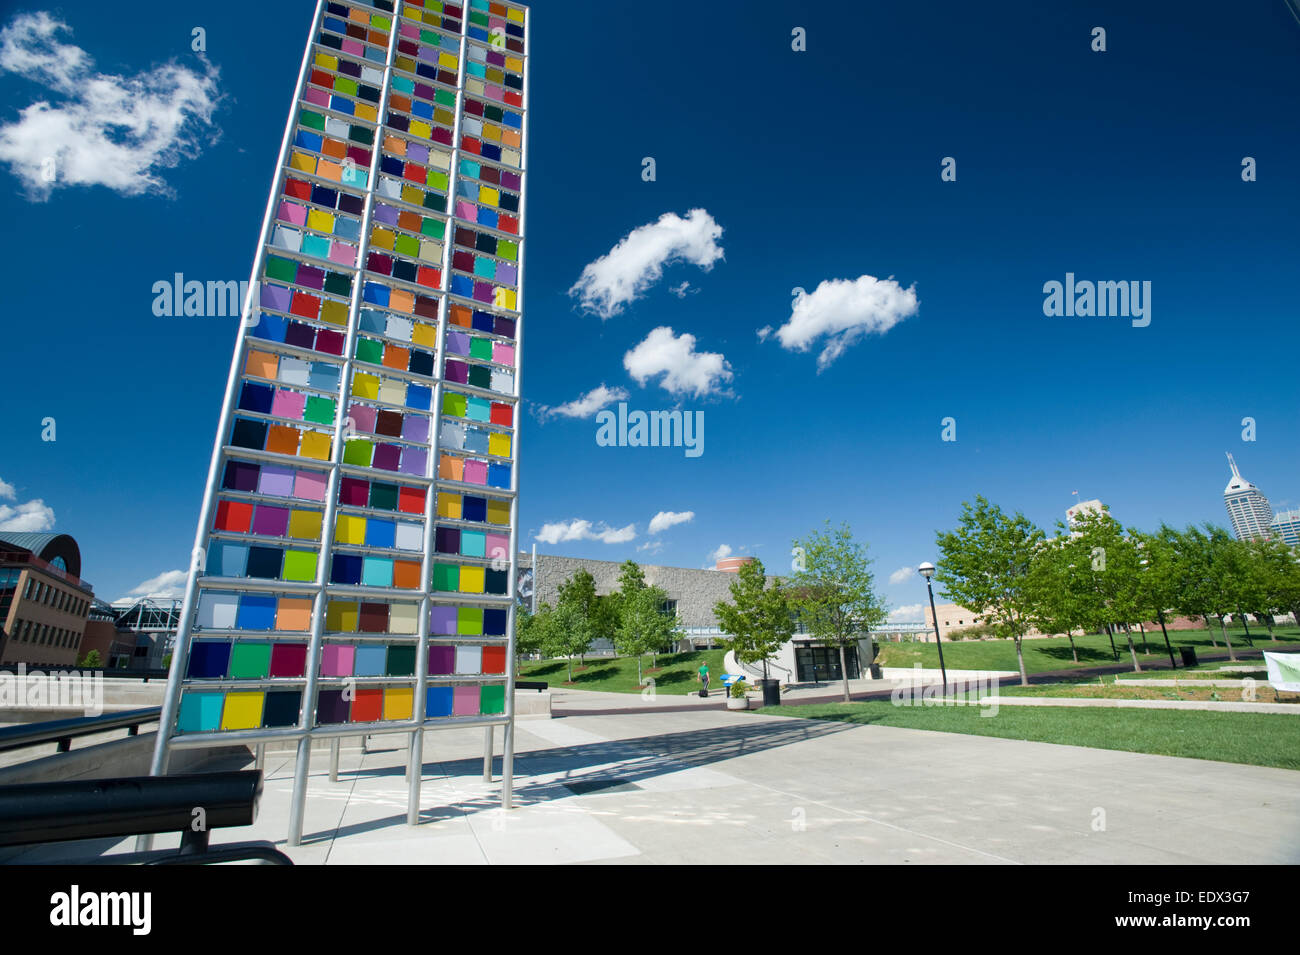 Stainless Steel Art Stock Photos & Stainless Steel Art Stock Images ...